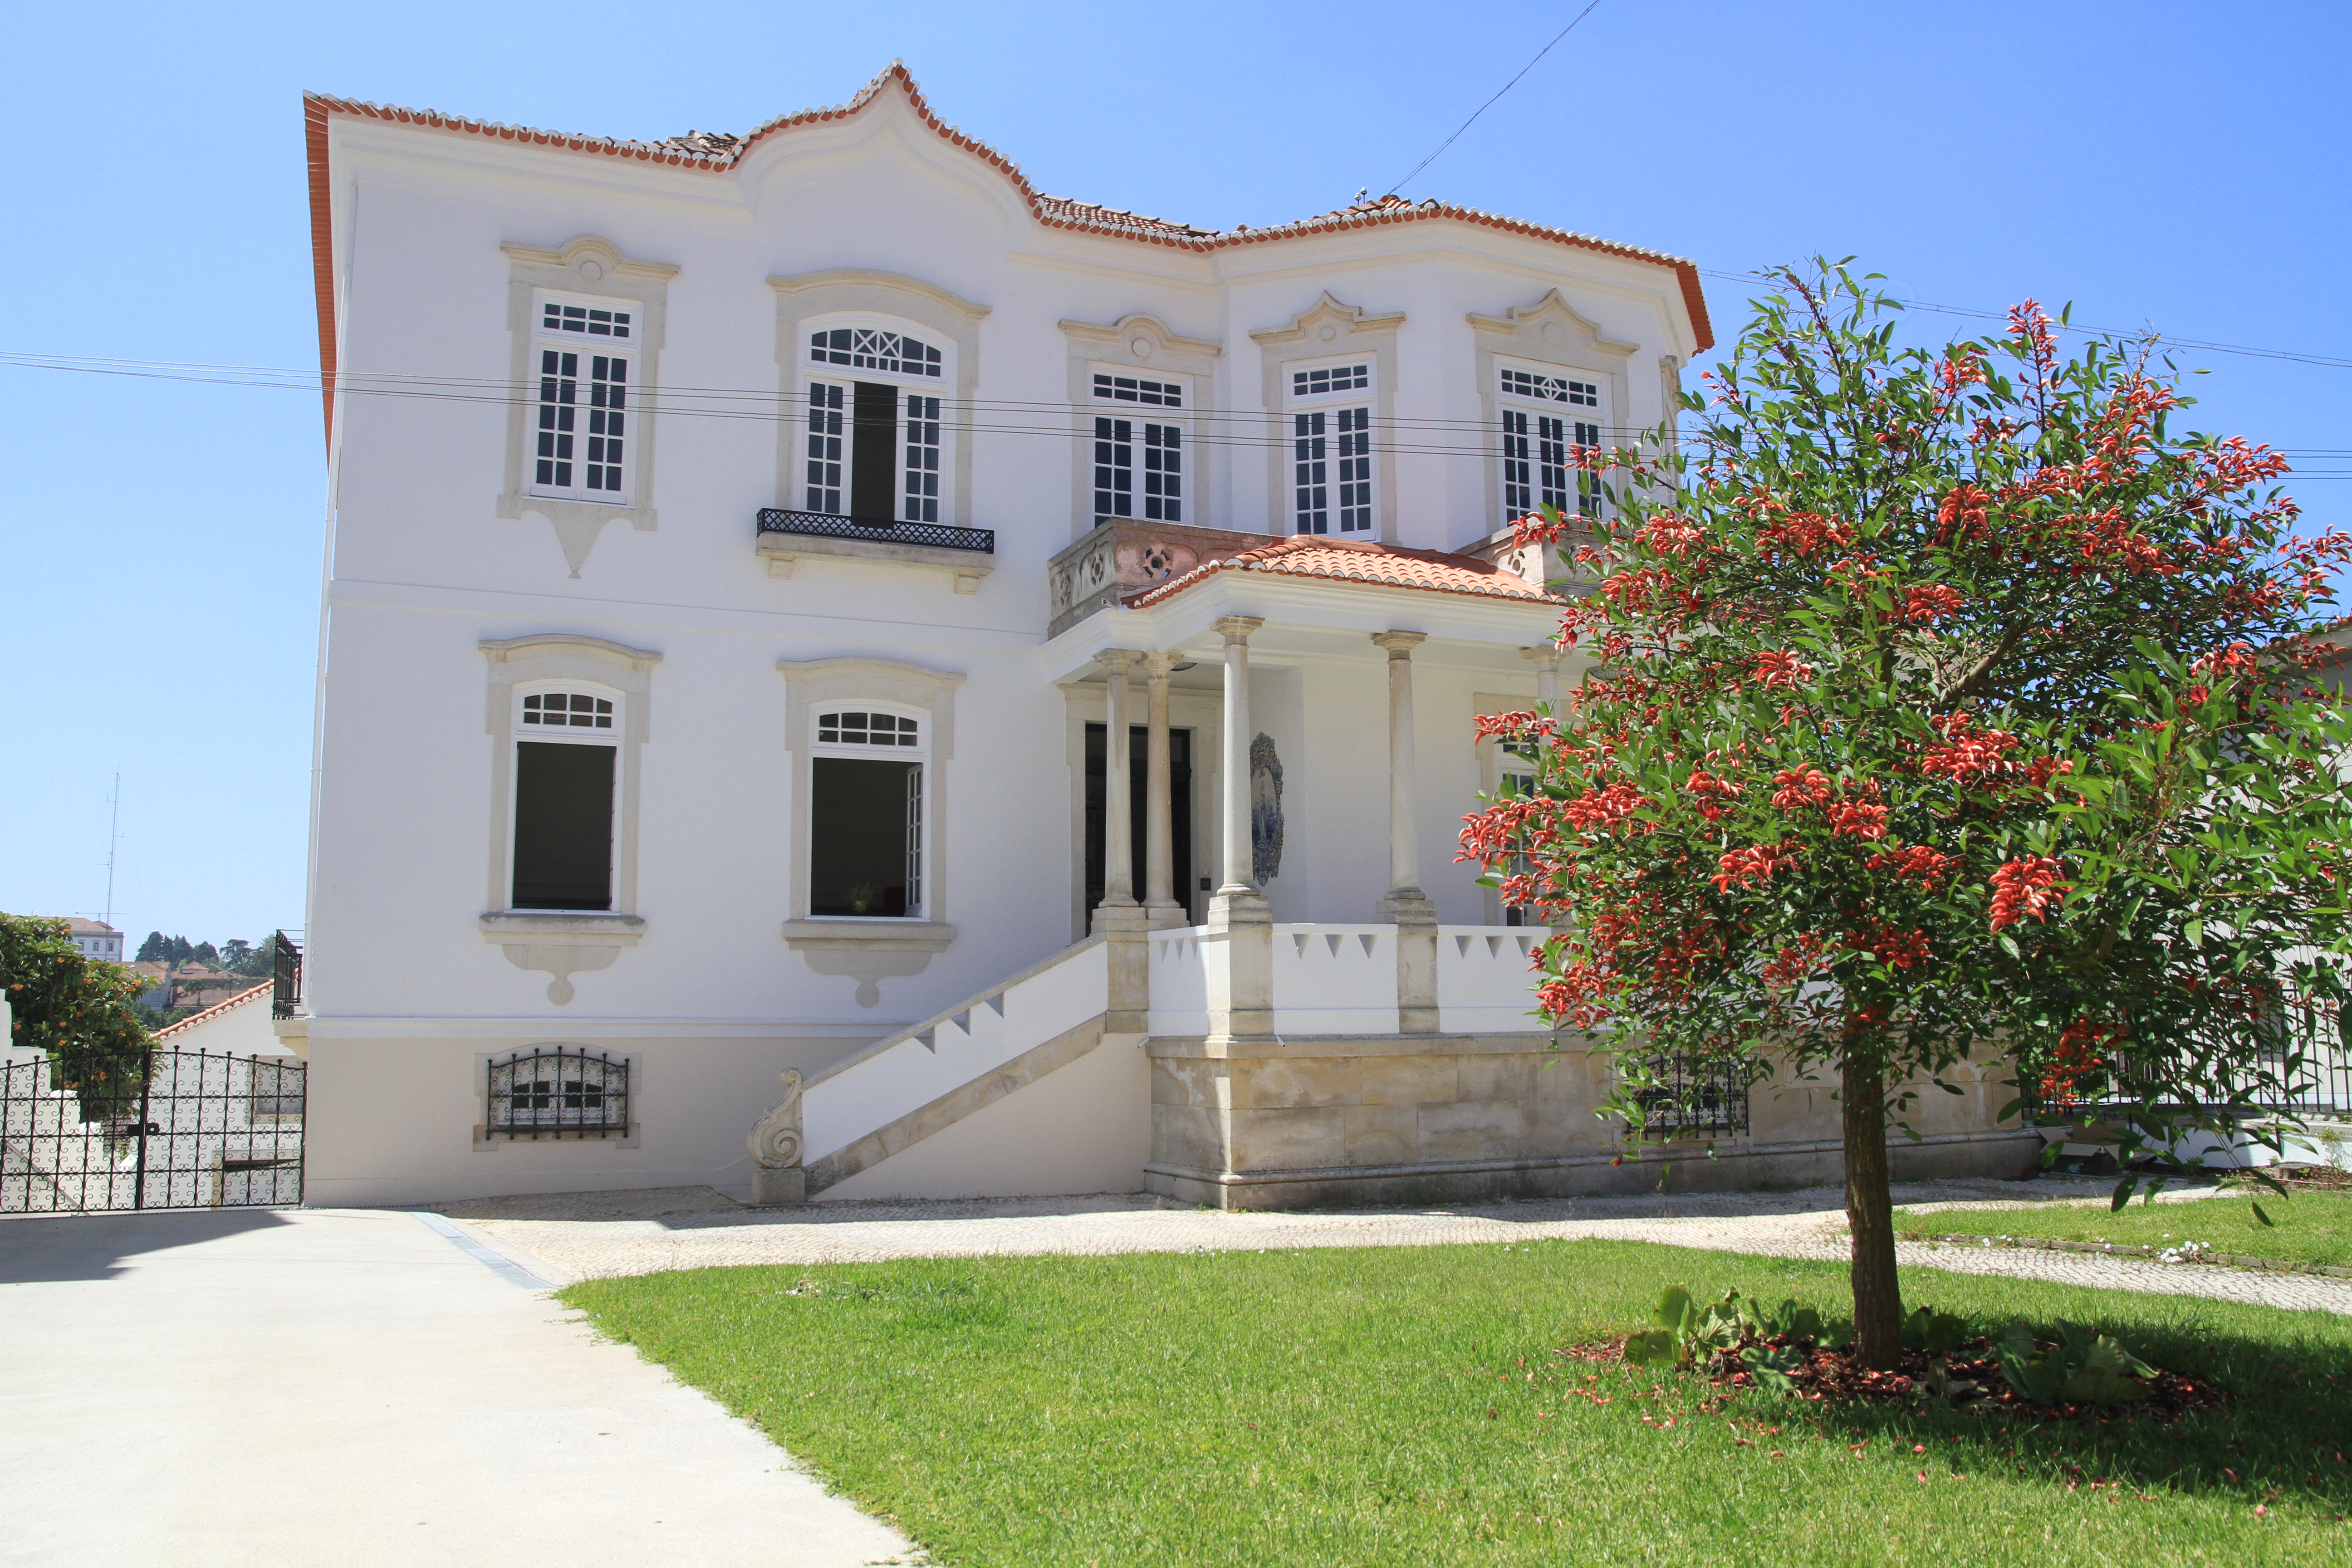 The Luggage Hostel & Suites, Coimbra